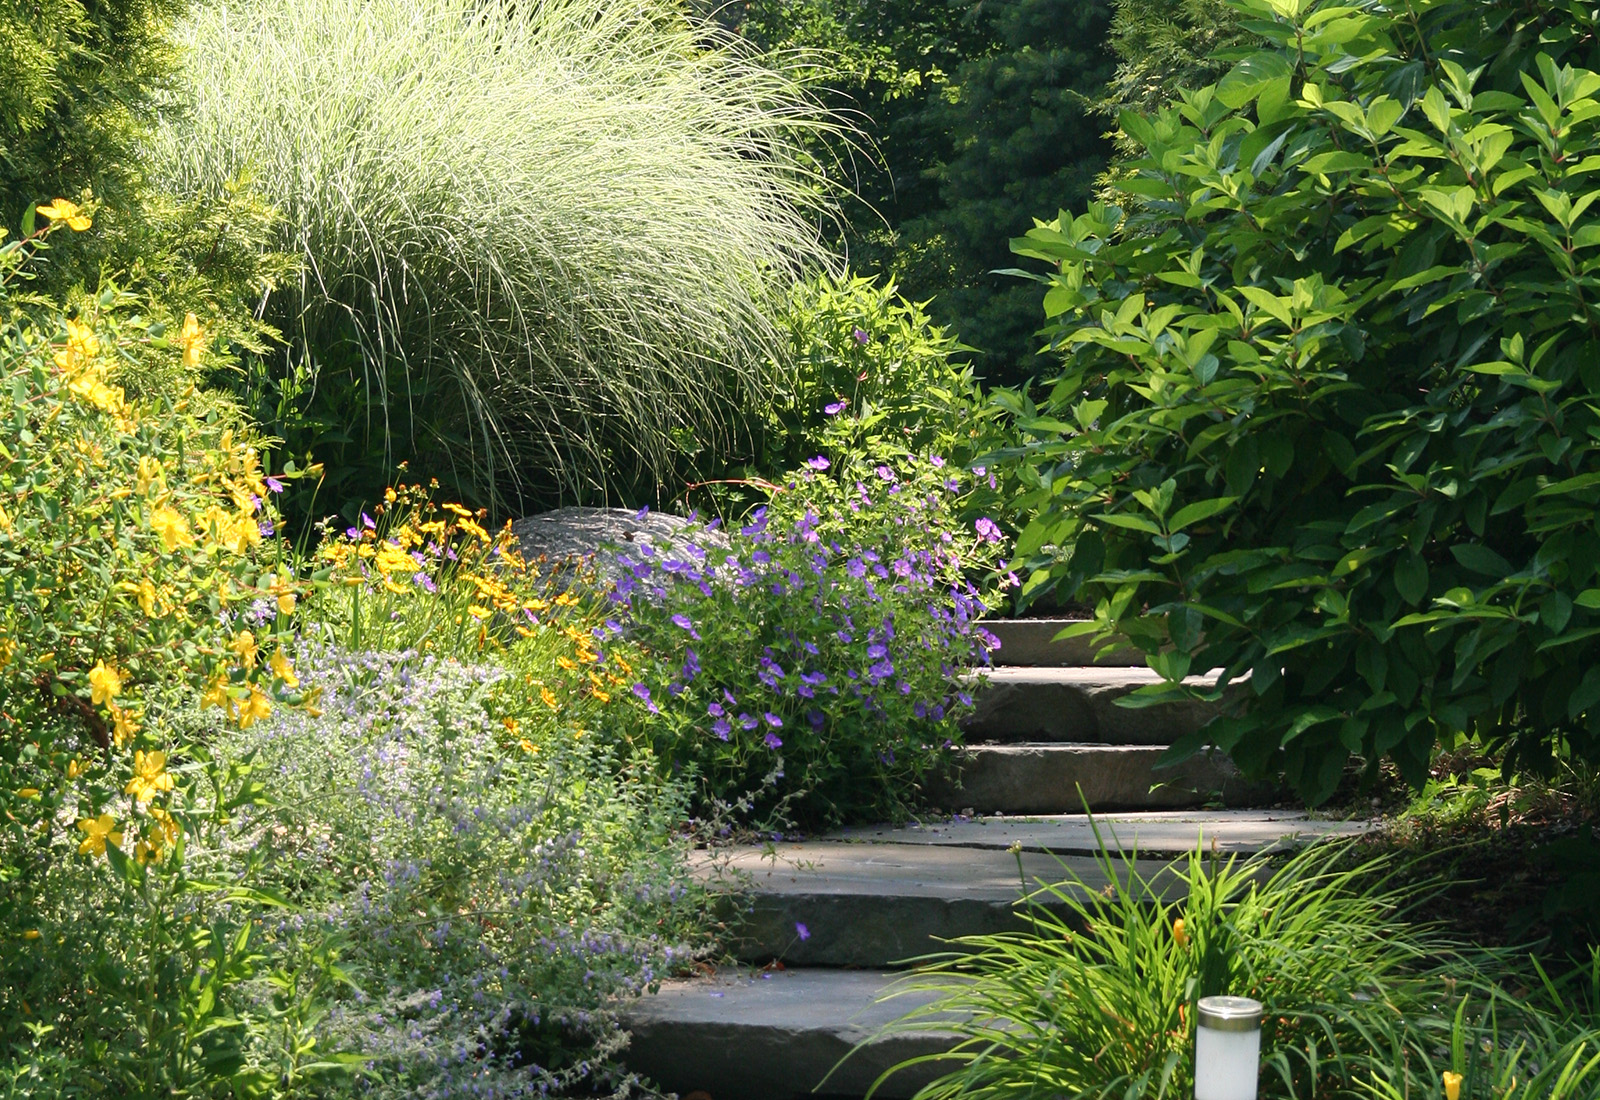 Stone garden steps surrounded by lush plants.